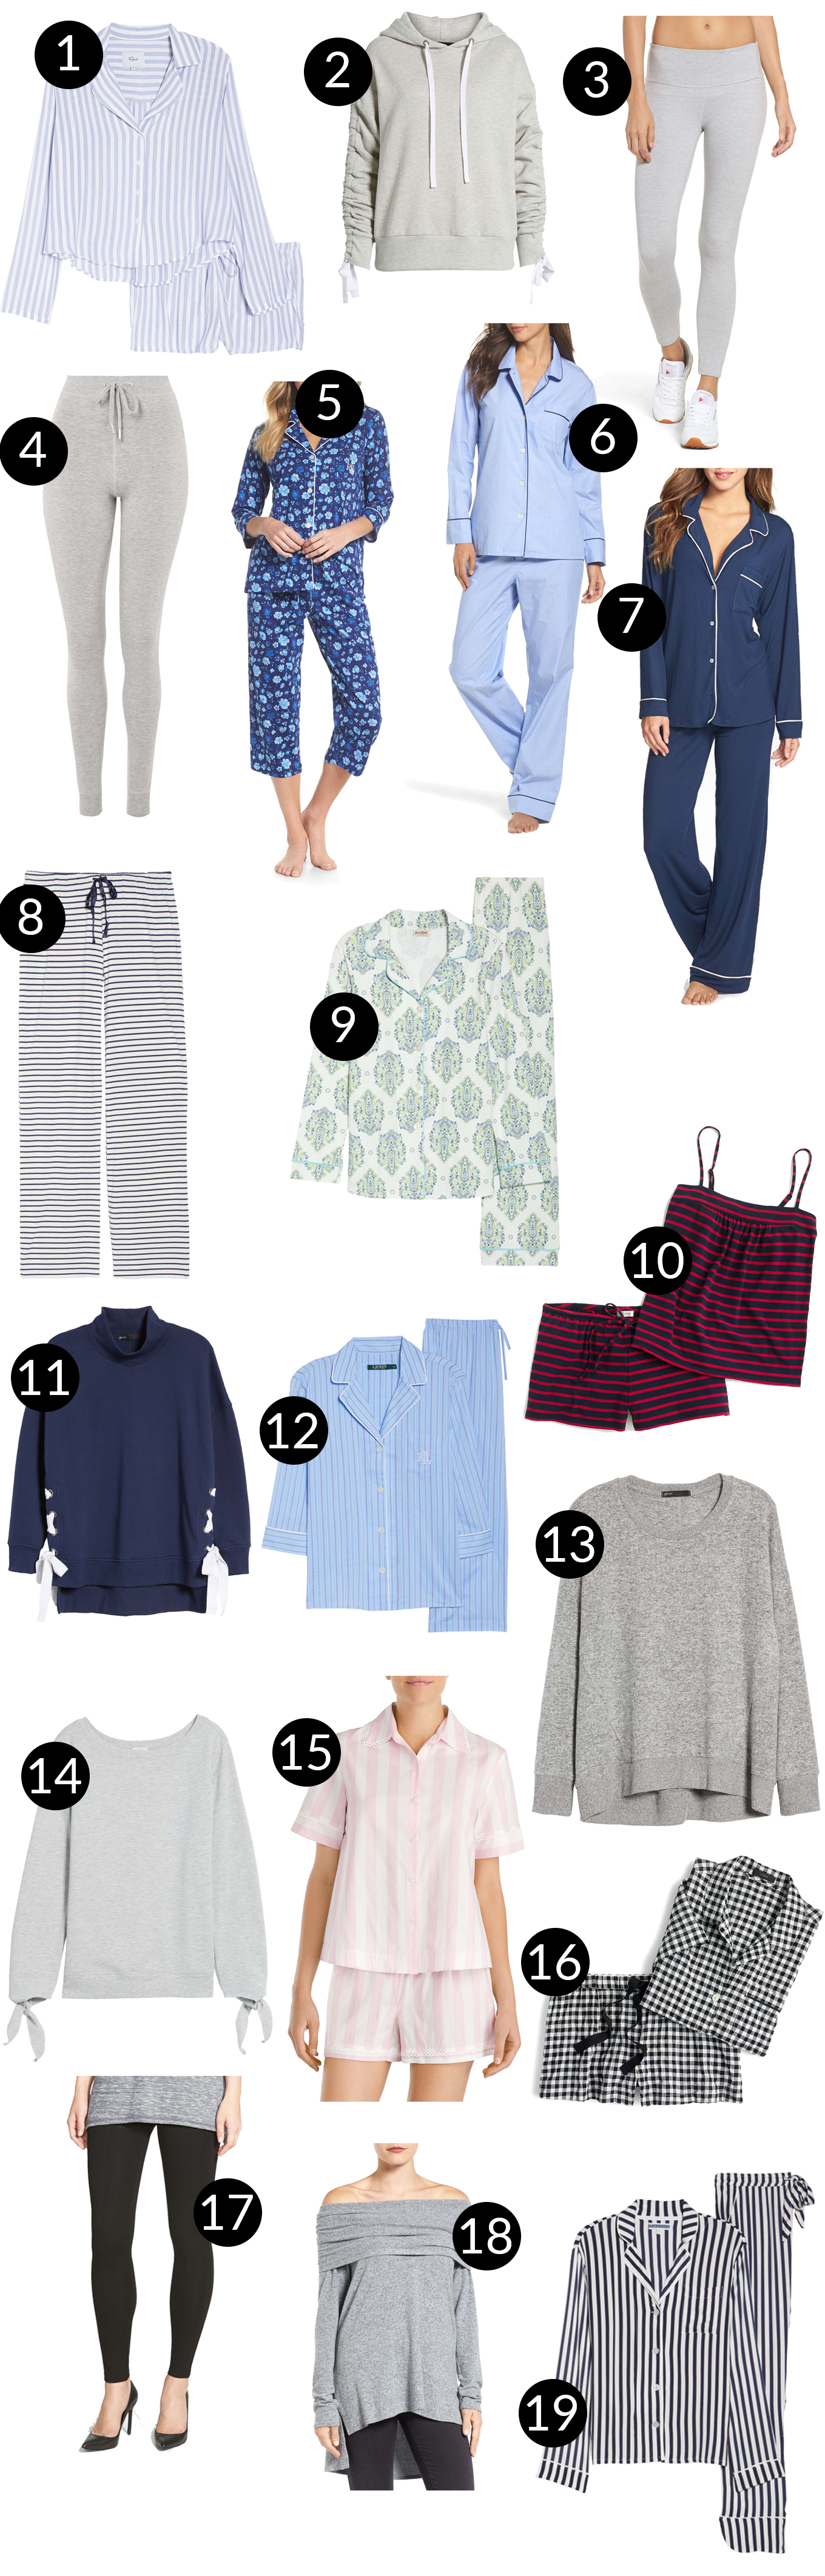 Clothes you can work from home in from the Half Yearly Sale